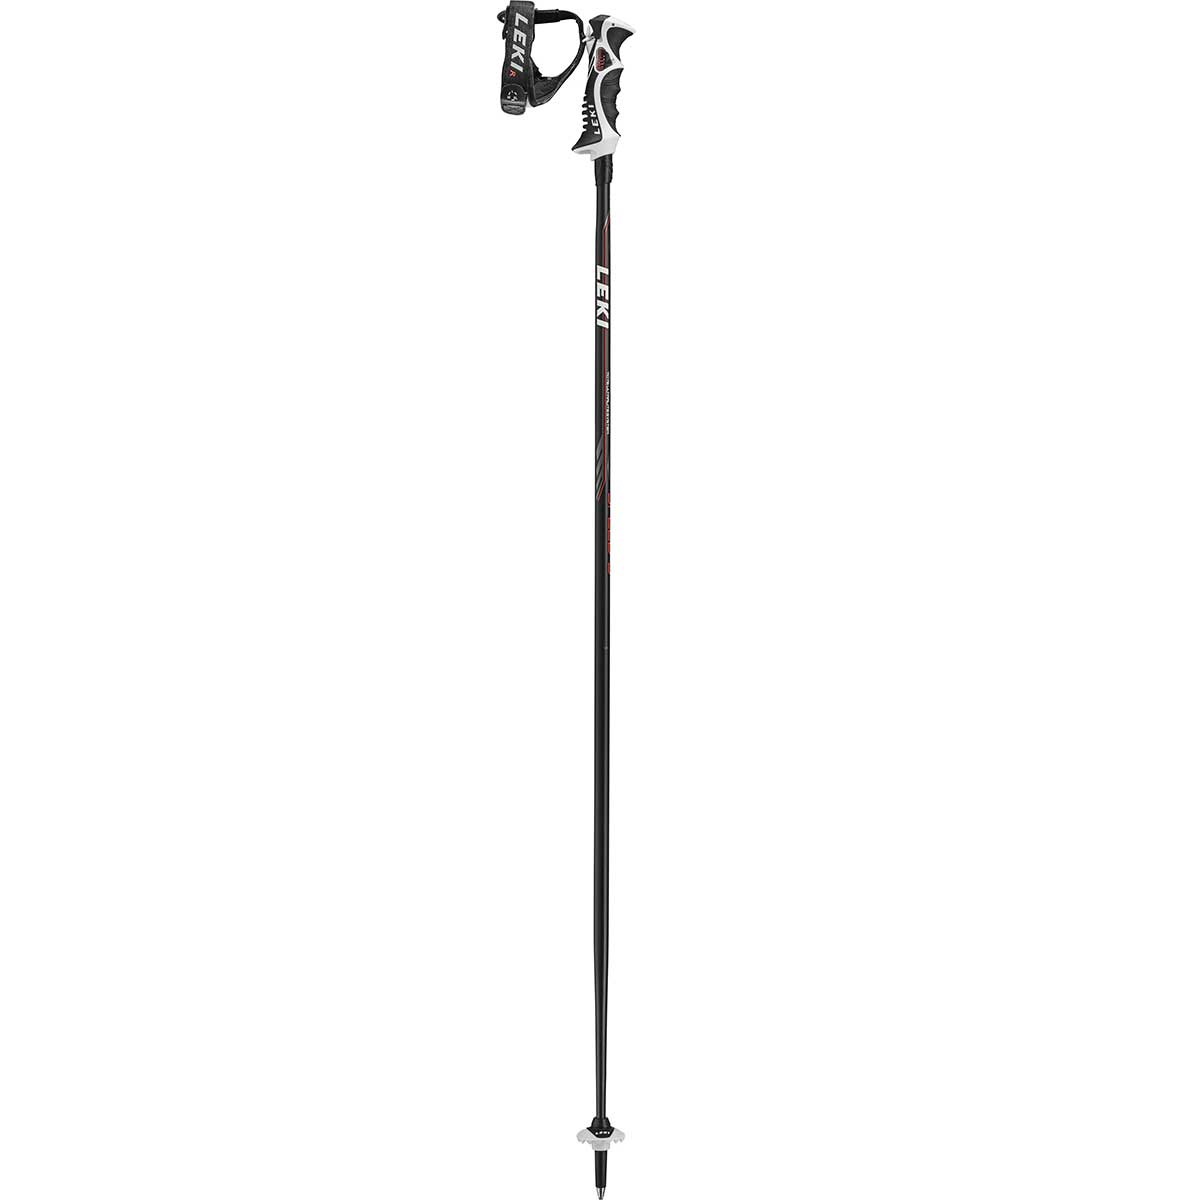 Leki Speed S ski pole in black red